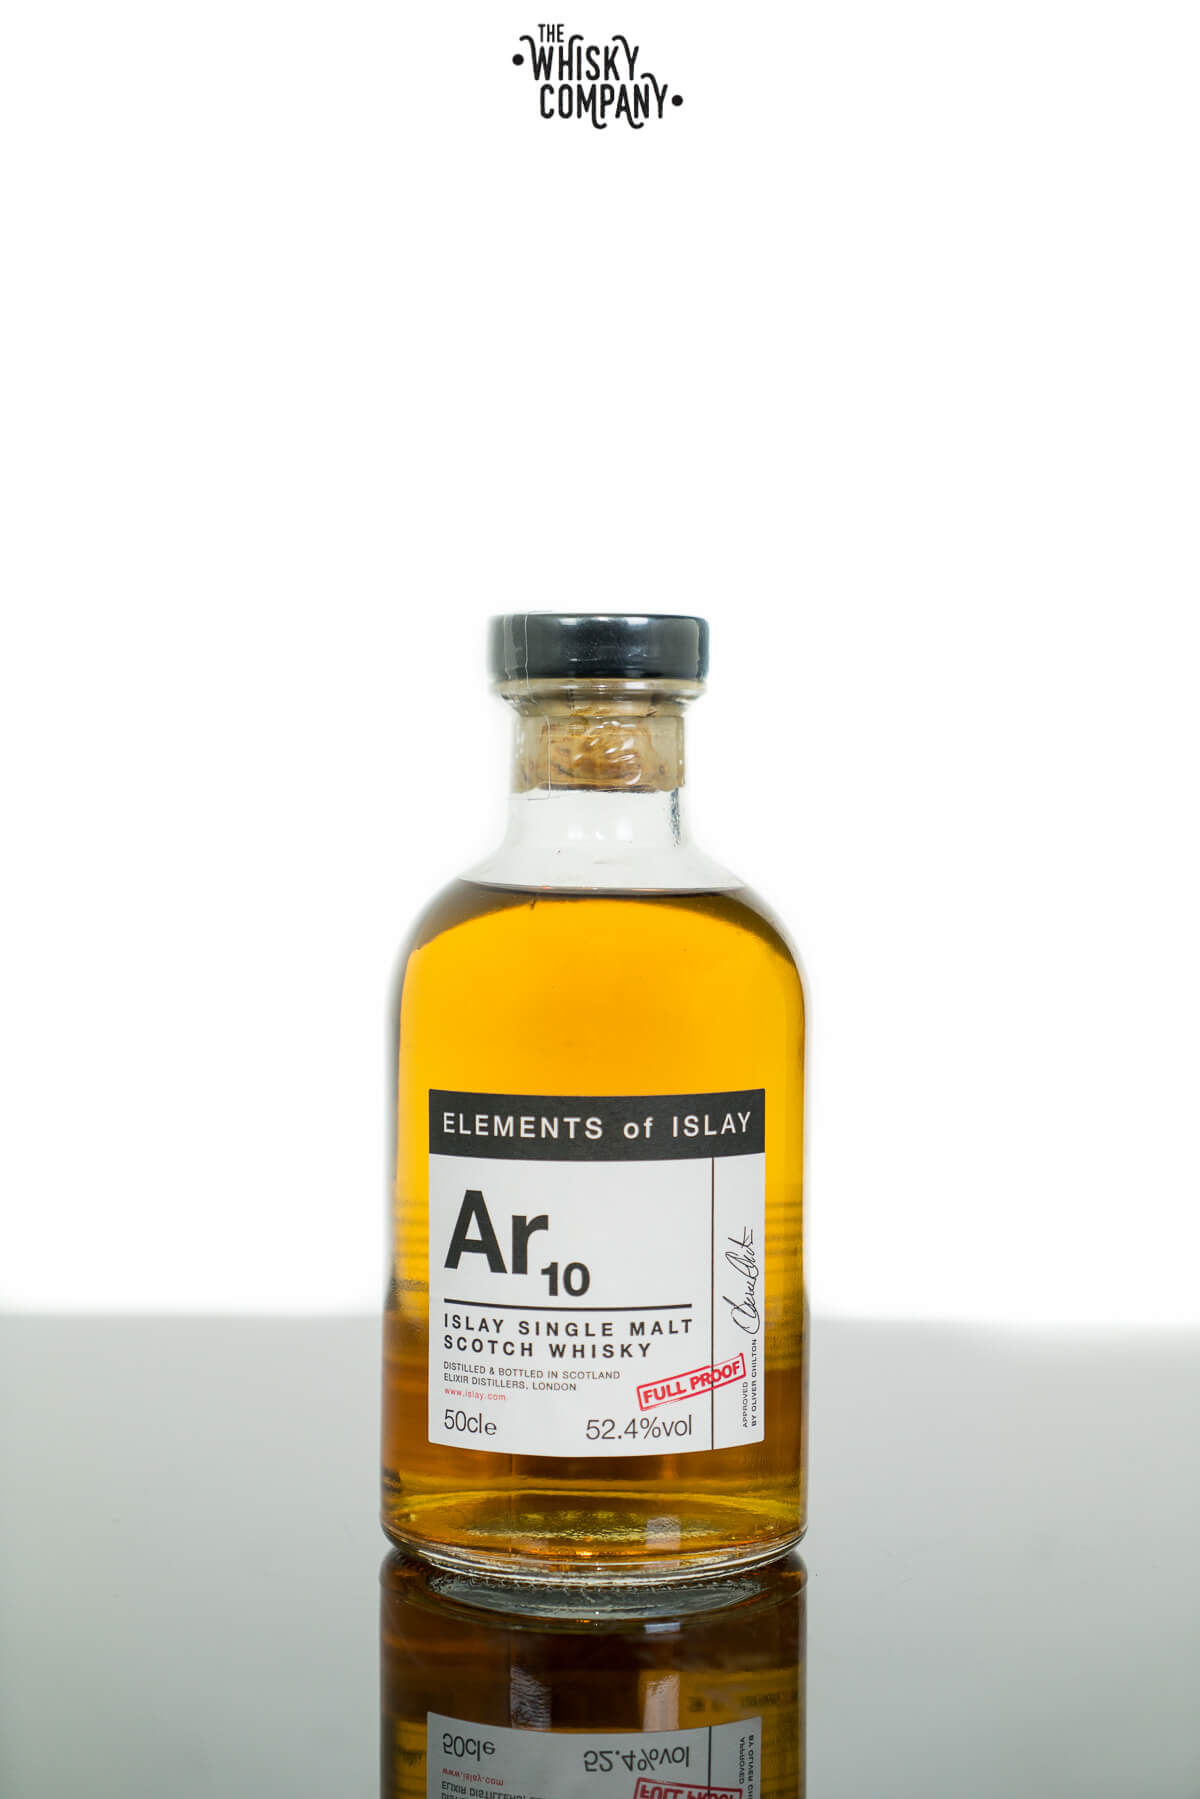 Elements Of Islay Ar10 Islay Single Malt Scotch Whisky (500ml)